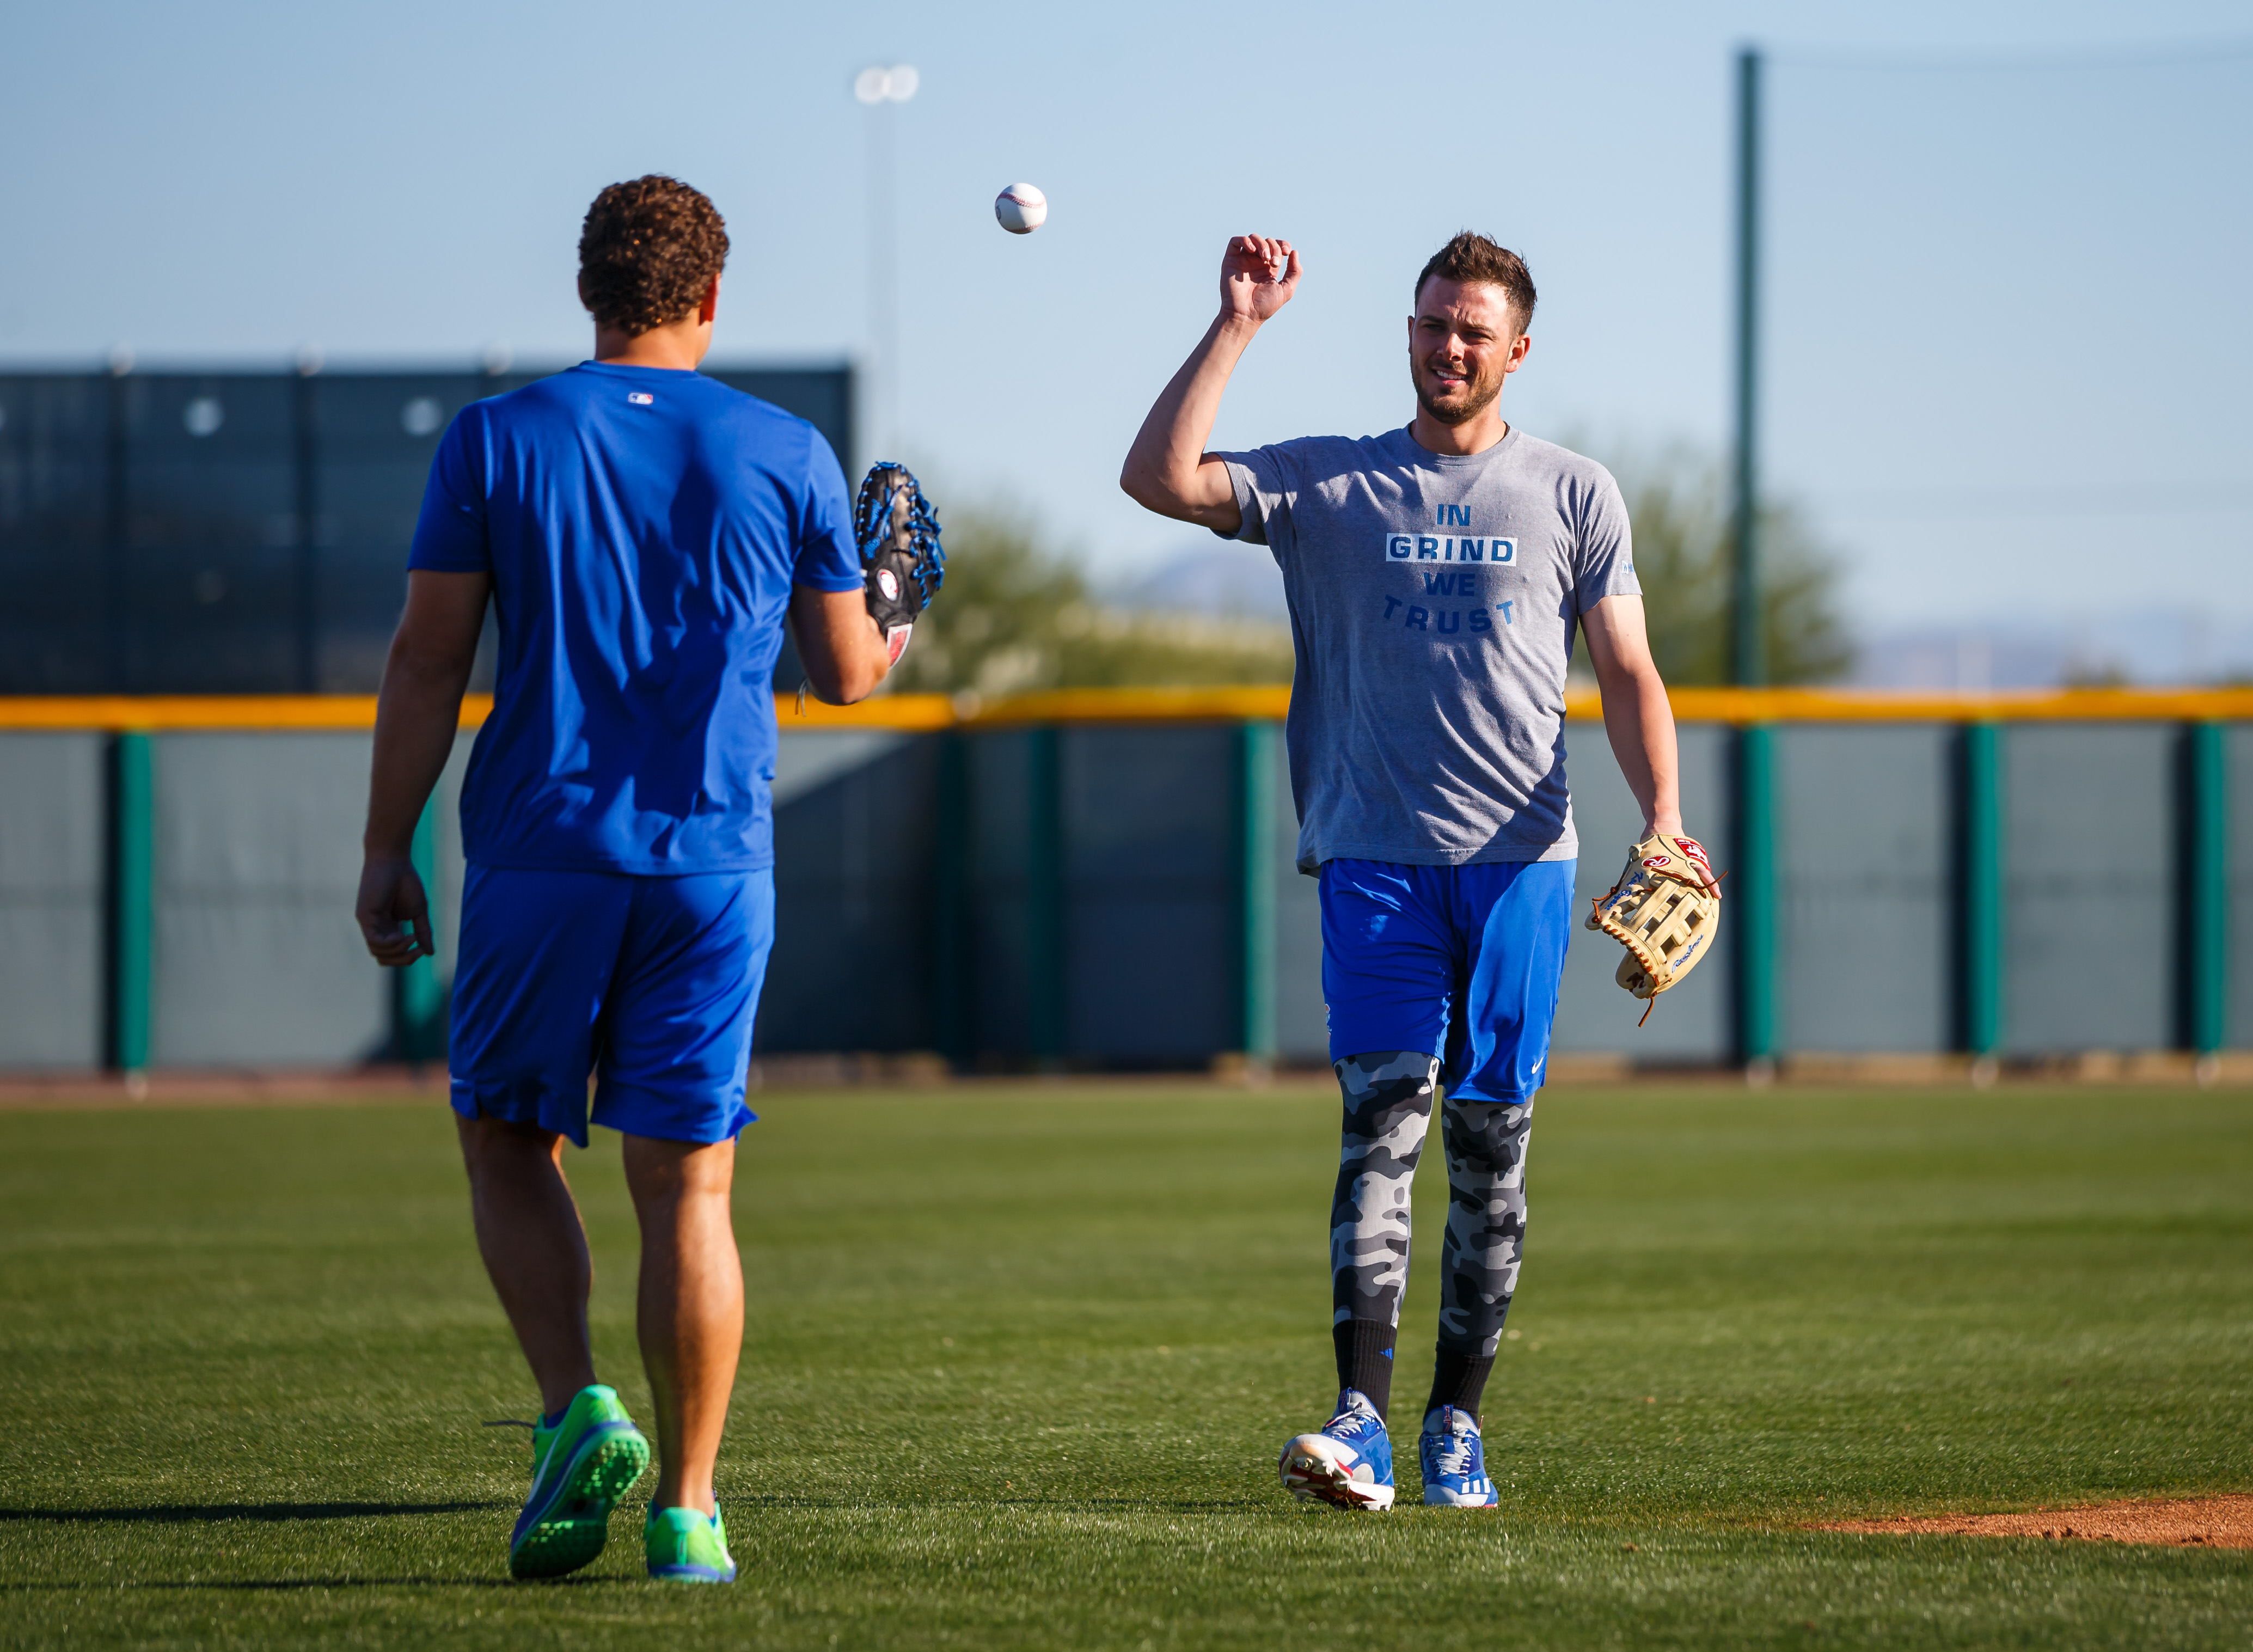 9879288-mlb-chicago-cubs-workouts